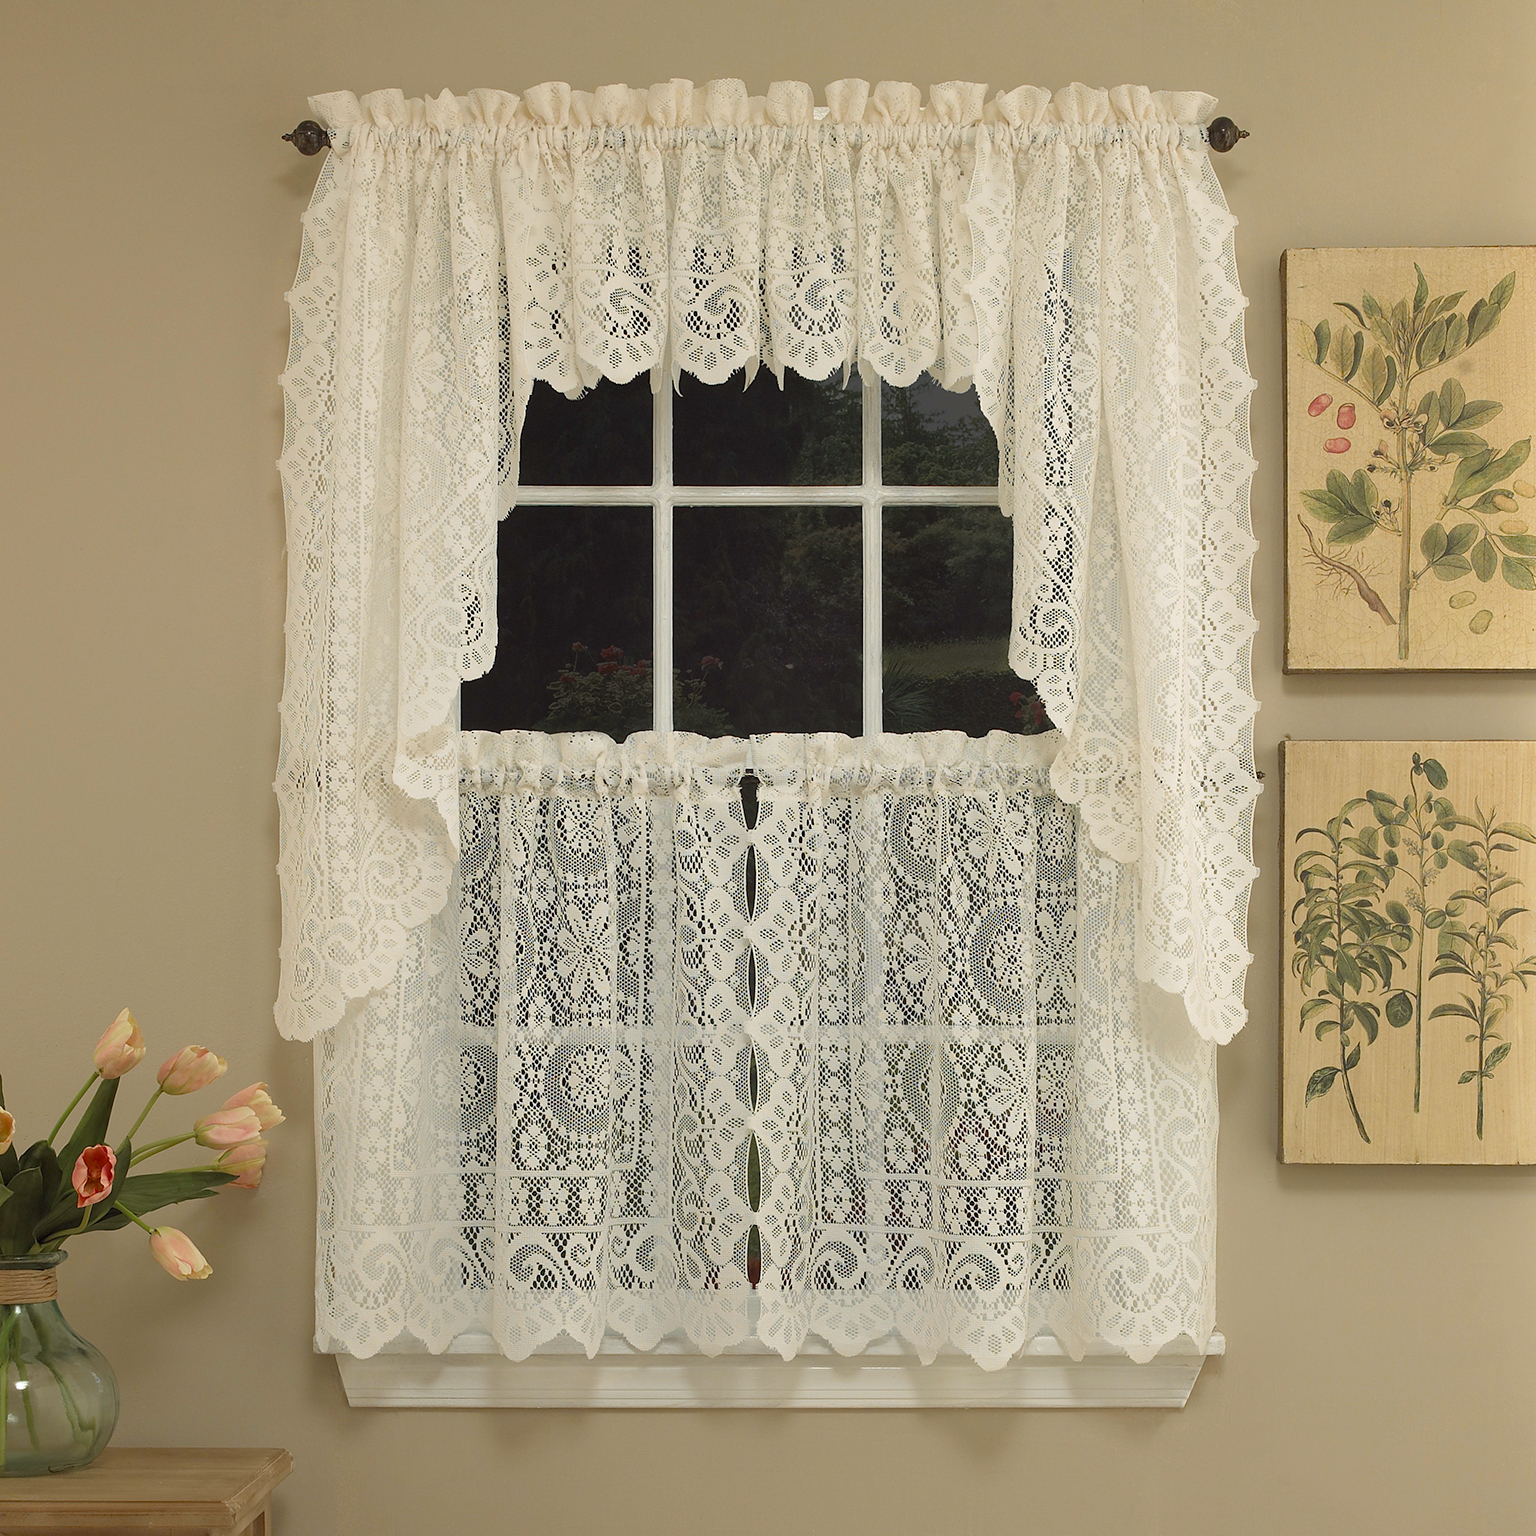 Details About Hopewell Heavy Cream Lace Kitchen Curtain Choice Of Tier Valance Or Swag Inside Sheer Lace Elongated Kitchen Curtain Tier Pairs (View 8 of 20)